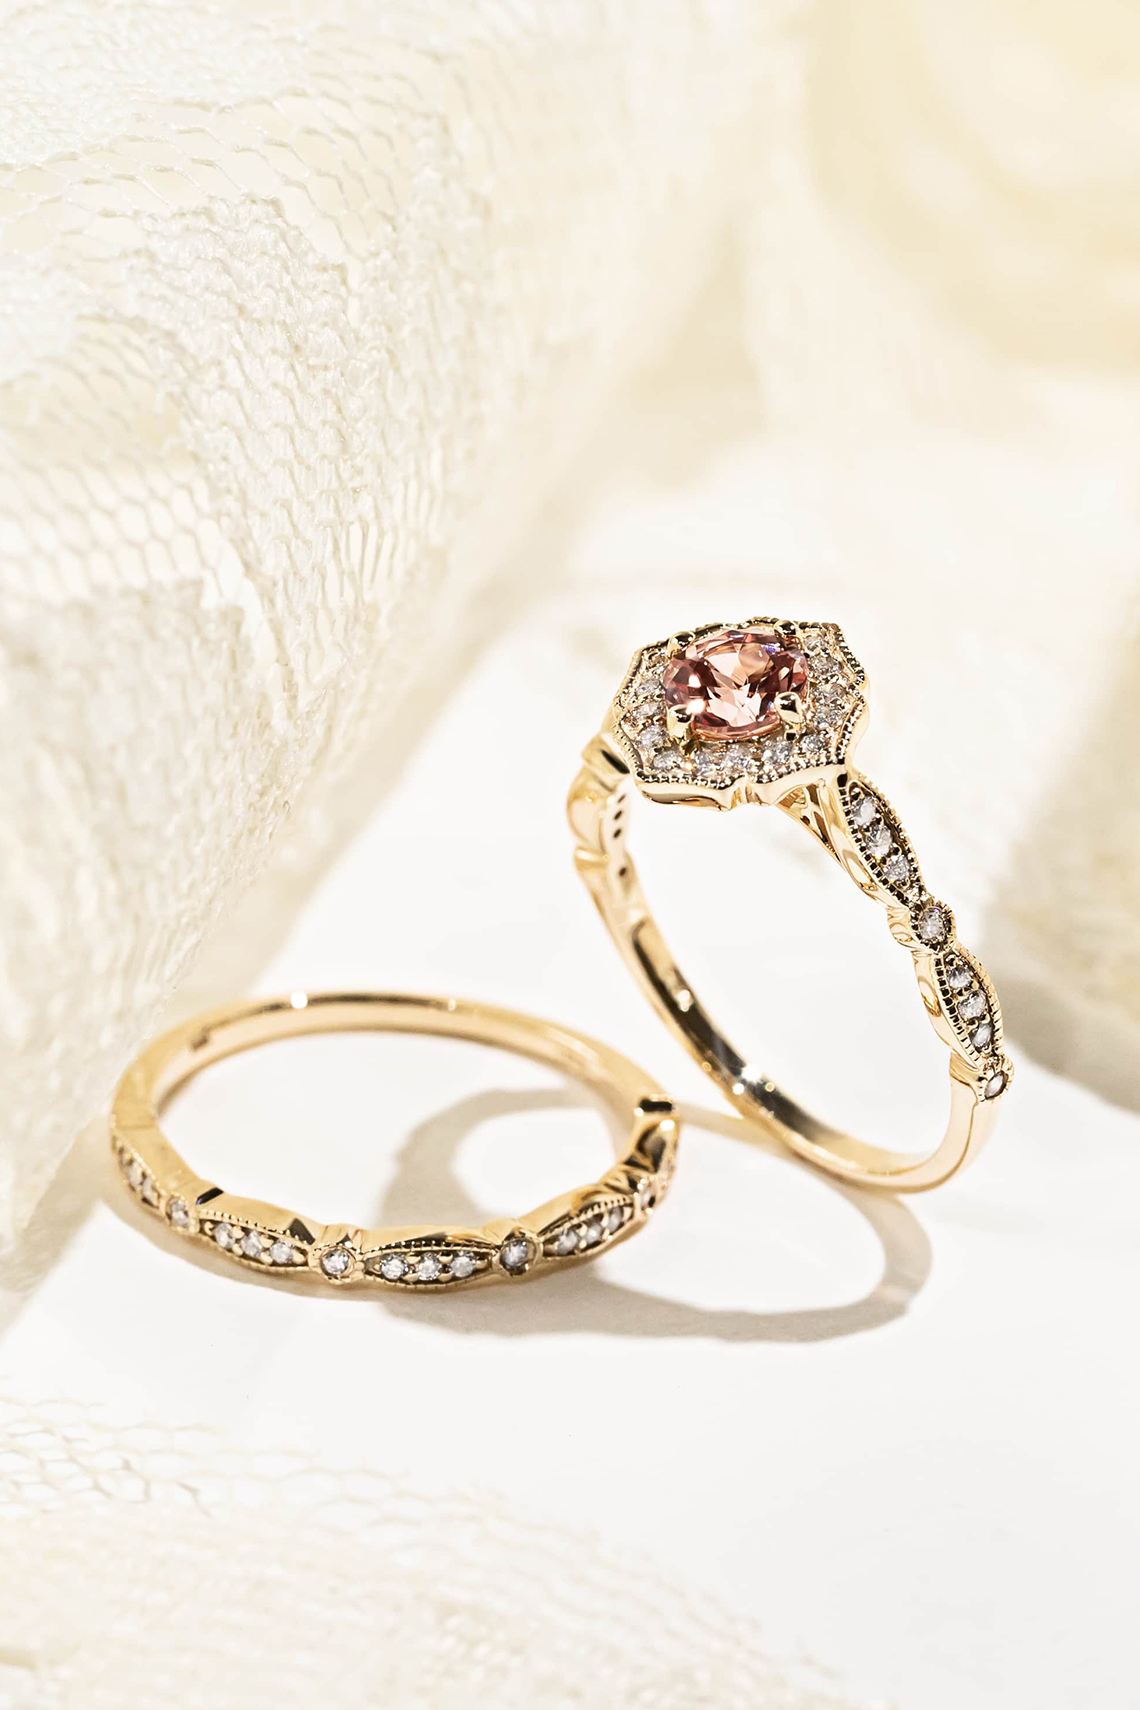 Romantic Vintage Inspired Eco Friendly MiaDonna Engagement Rings – Paris-Stackable-WS-05-Lifestyle (1) (1)